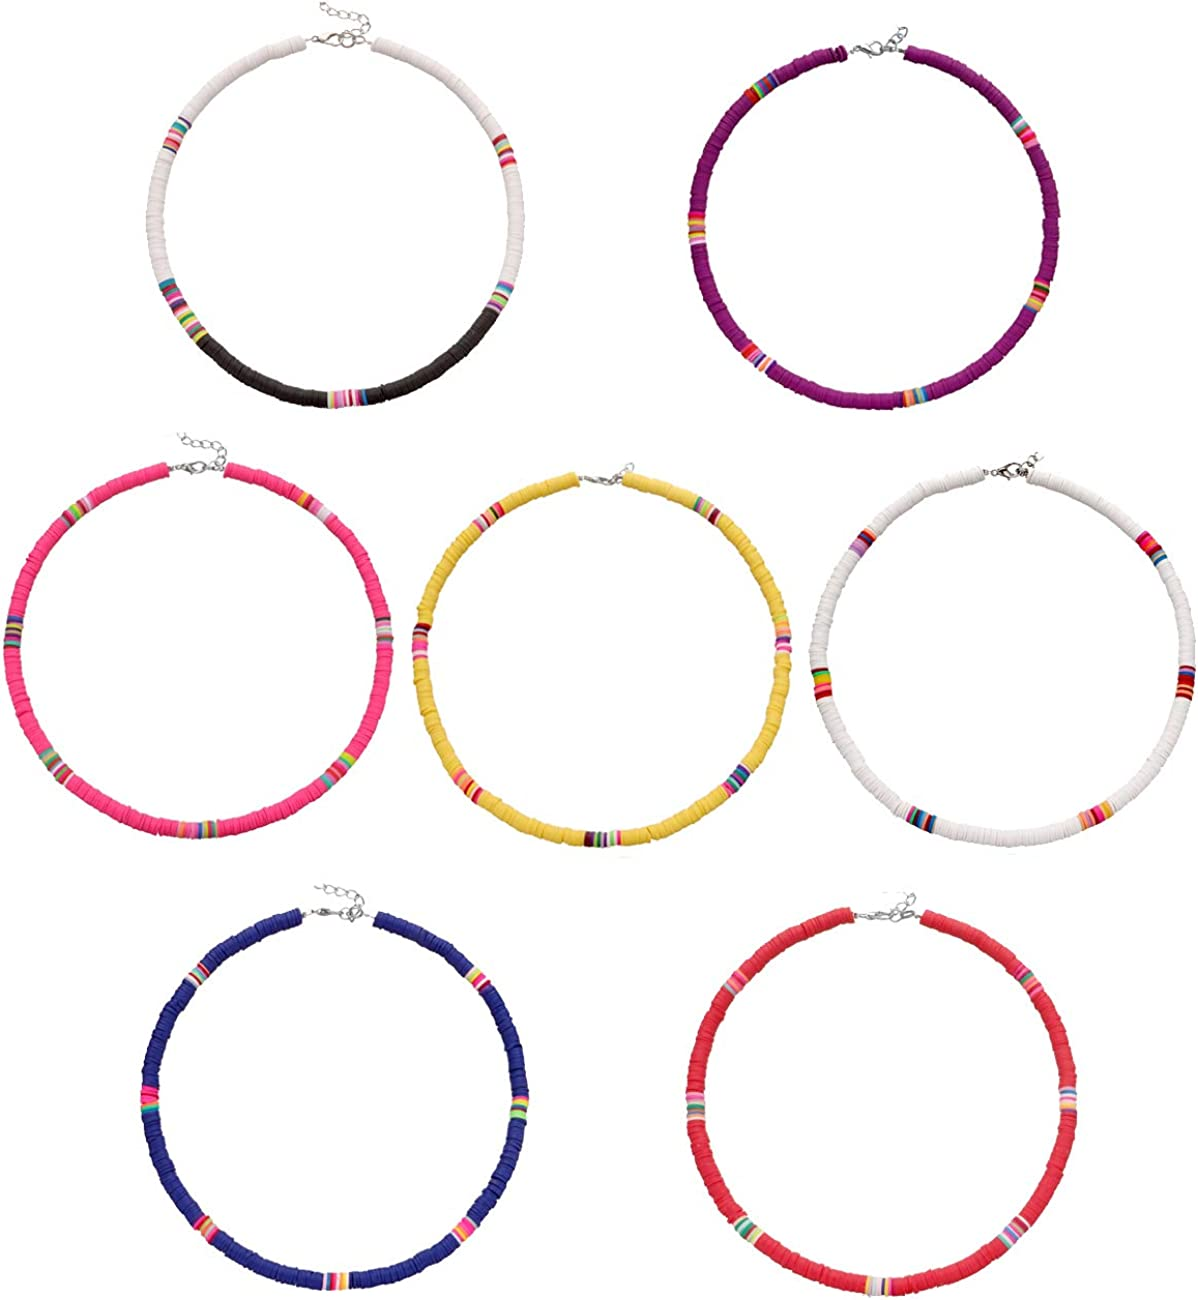 VALIJINA 4-7 Pieces Heishi Surfer Choker Necklace for Women Colorful African Vinyl Disc Bead Necklace Bohemian Bead Choker Summer Beach Jewelry for Holidays